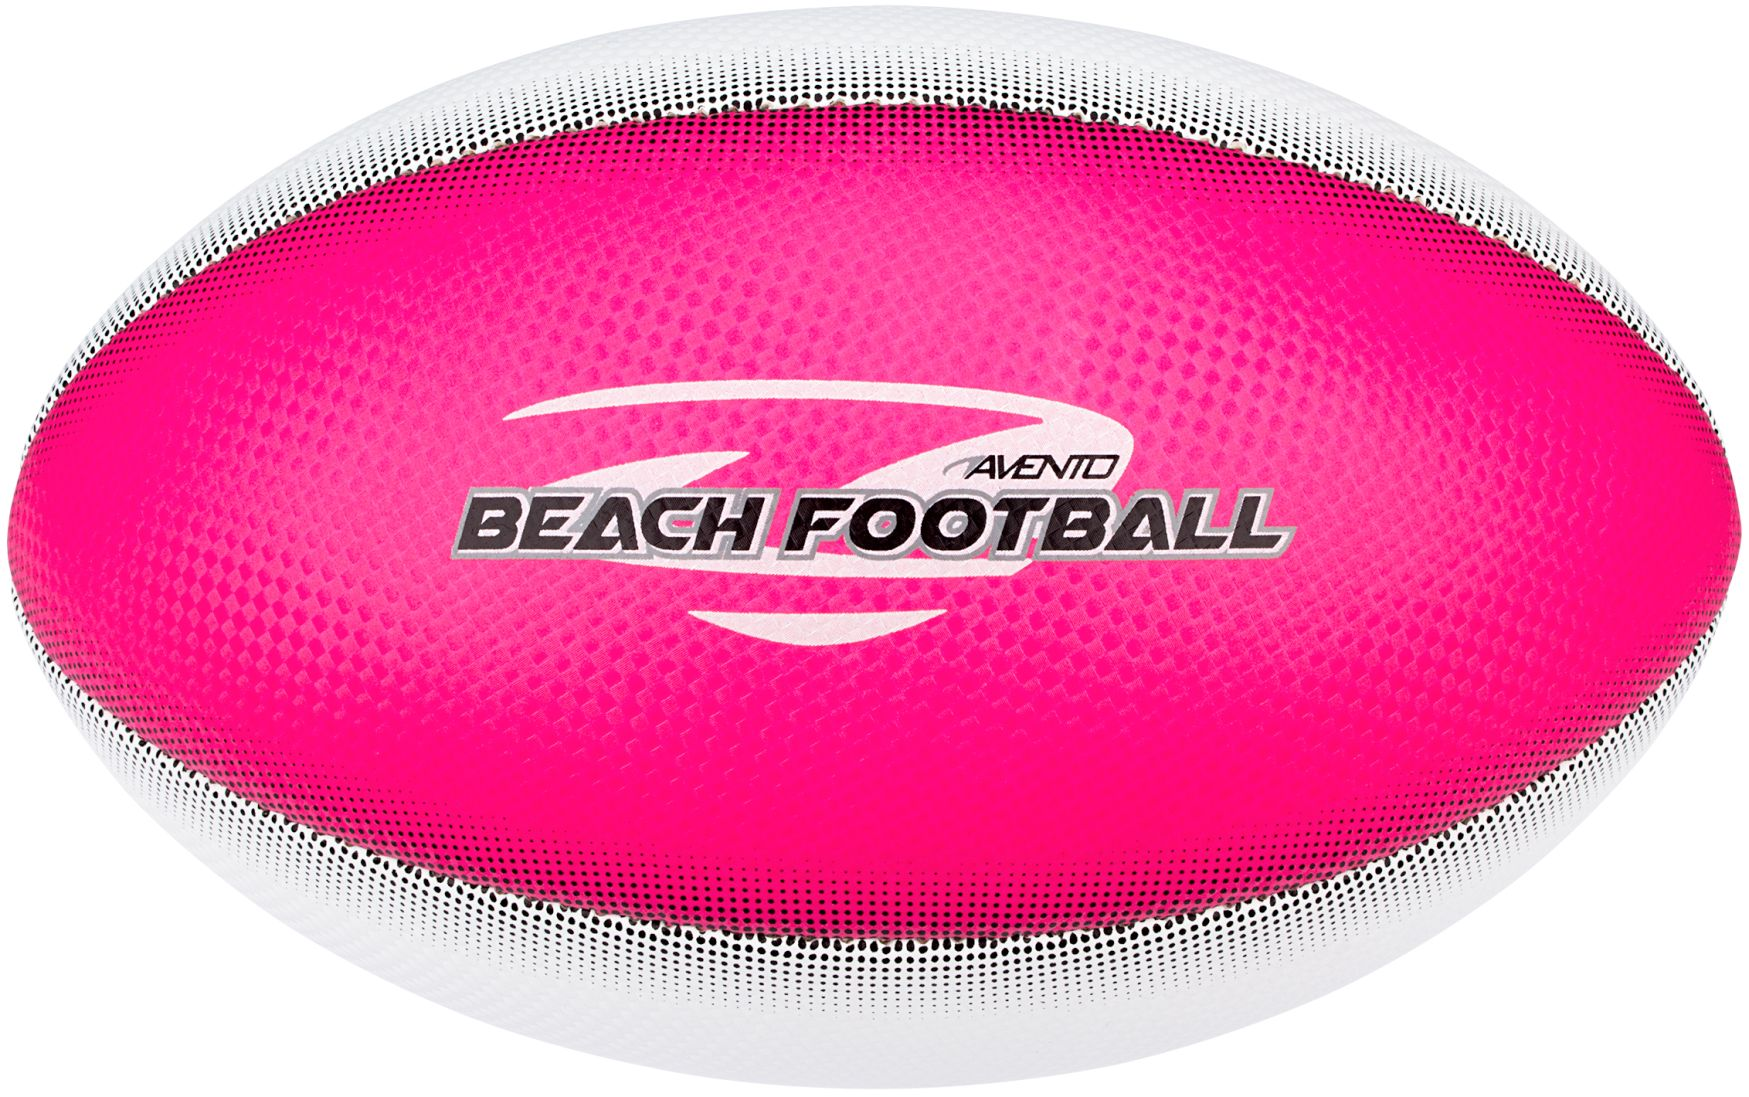 Strand Football • Soft Touch • Touchdown •